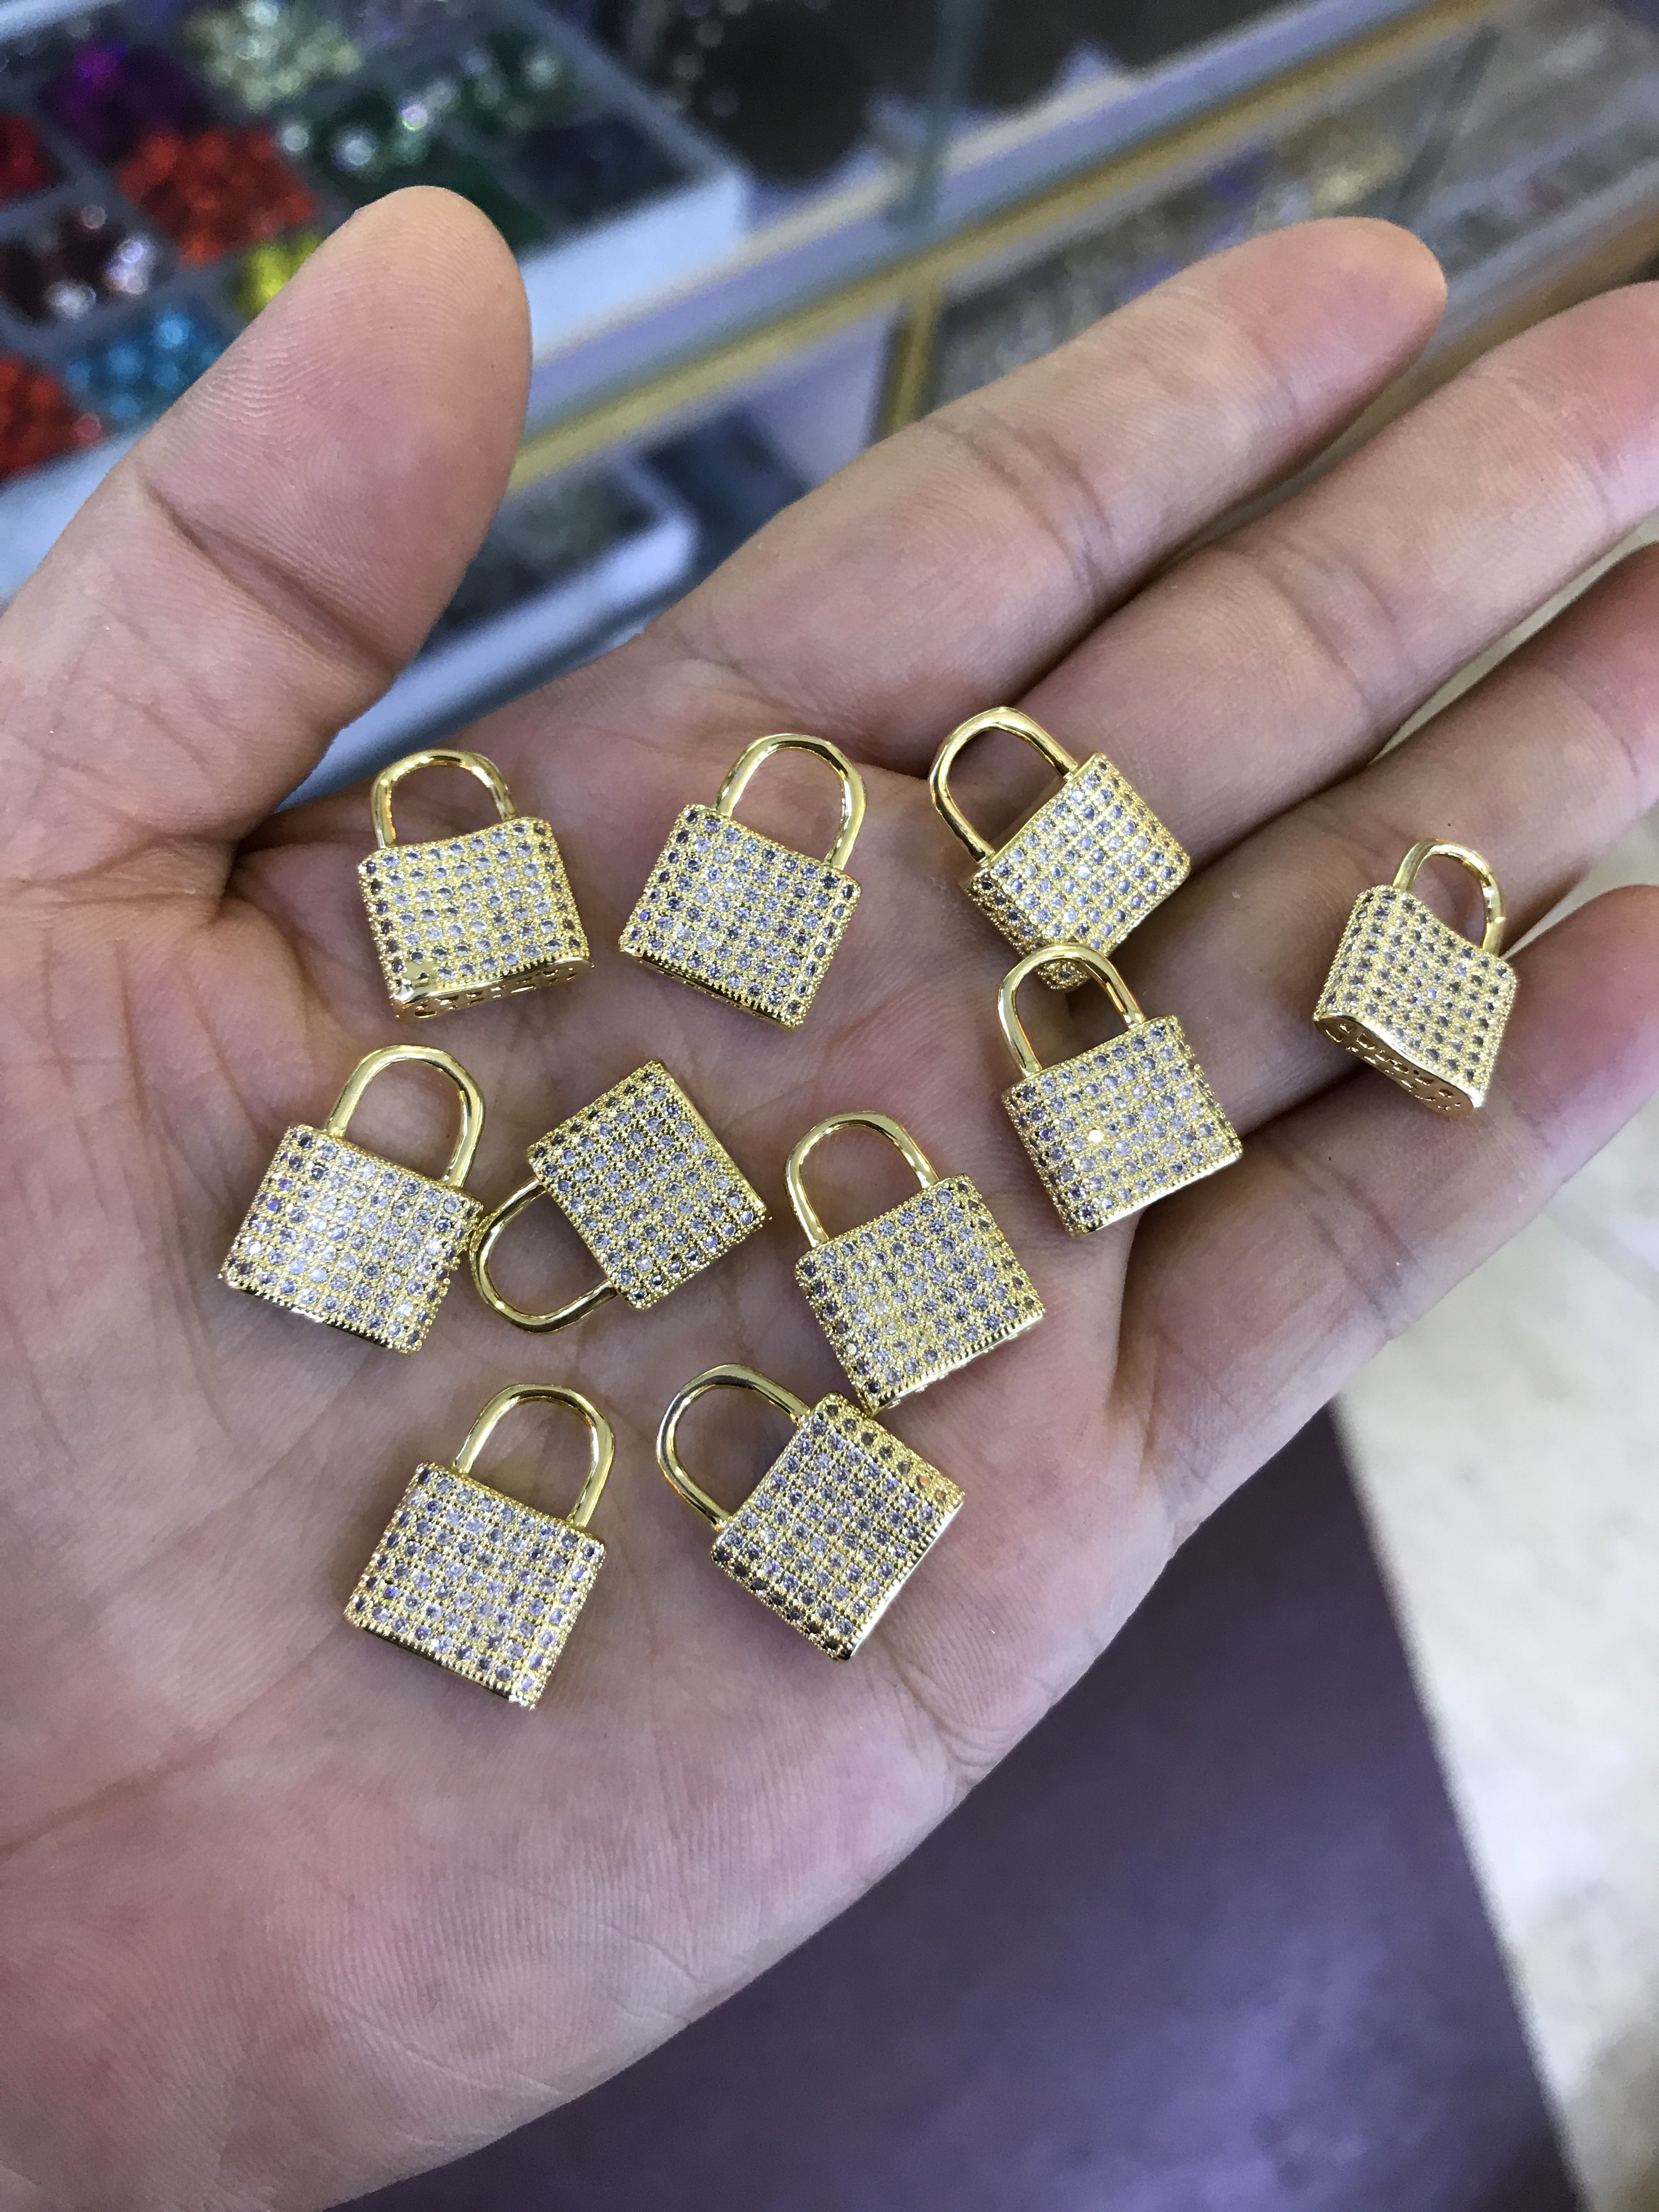 Hot Sale Lock Pendant brass DIY Findings Charms pendant Crafts Jewelry Making Design Accessories For Necklace Bracelet